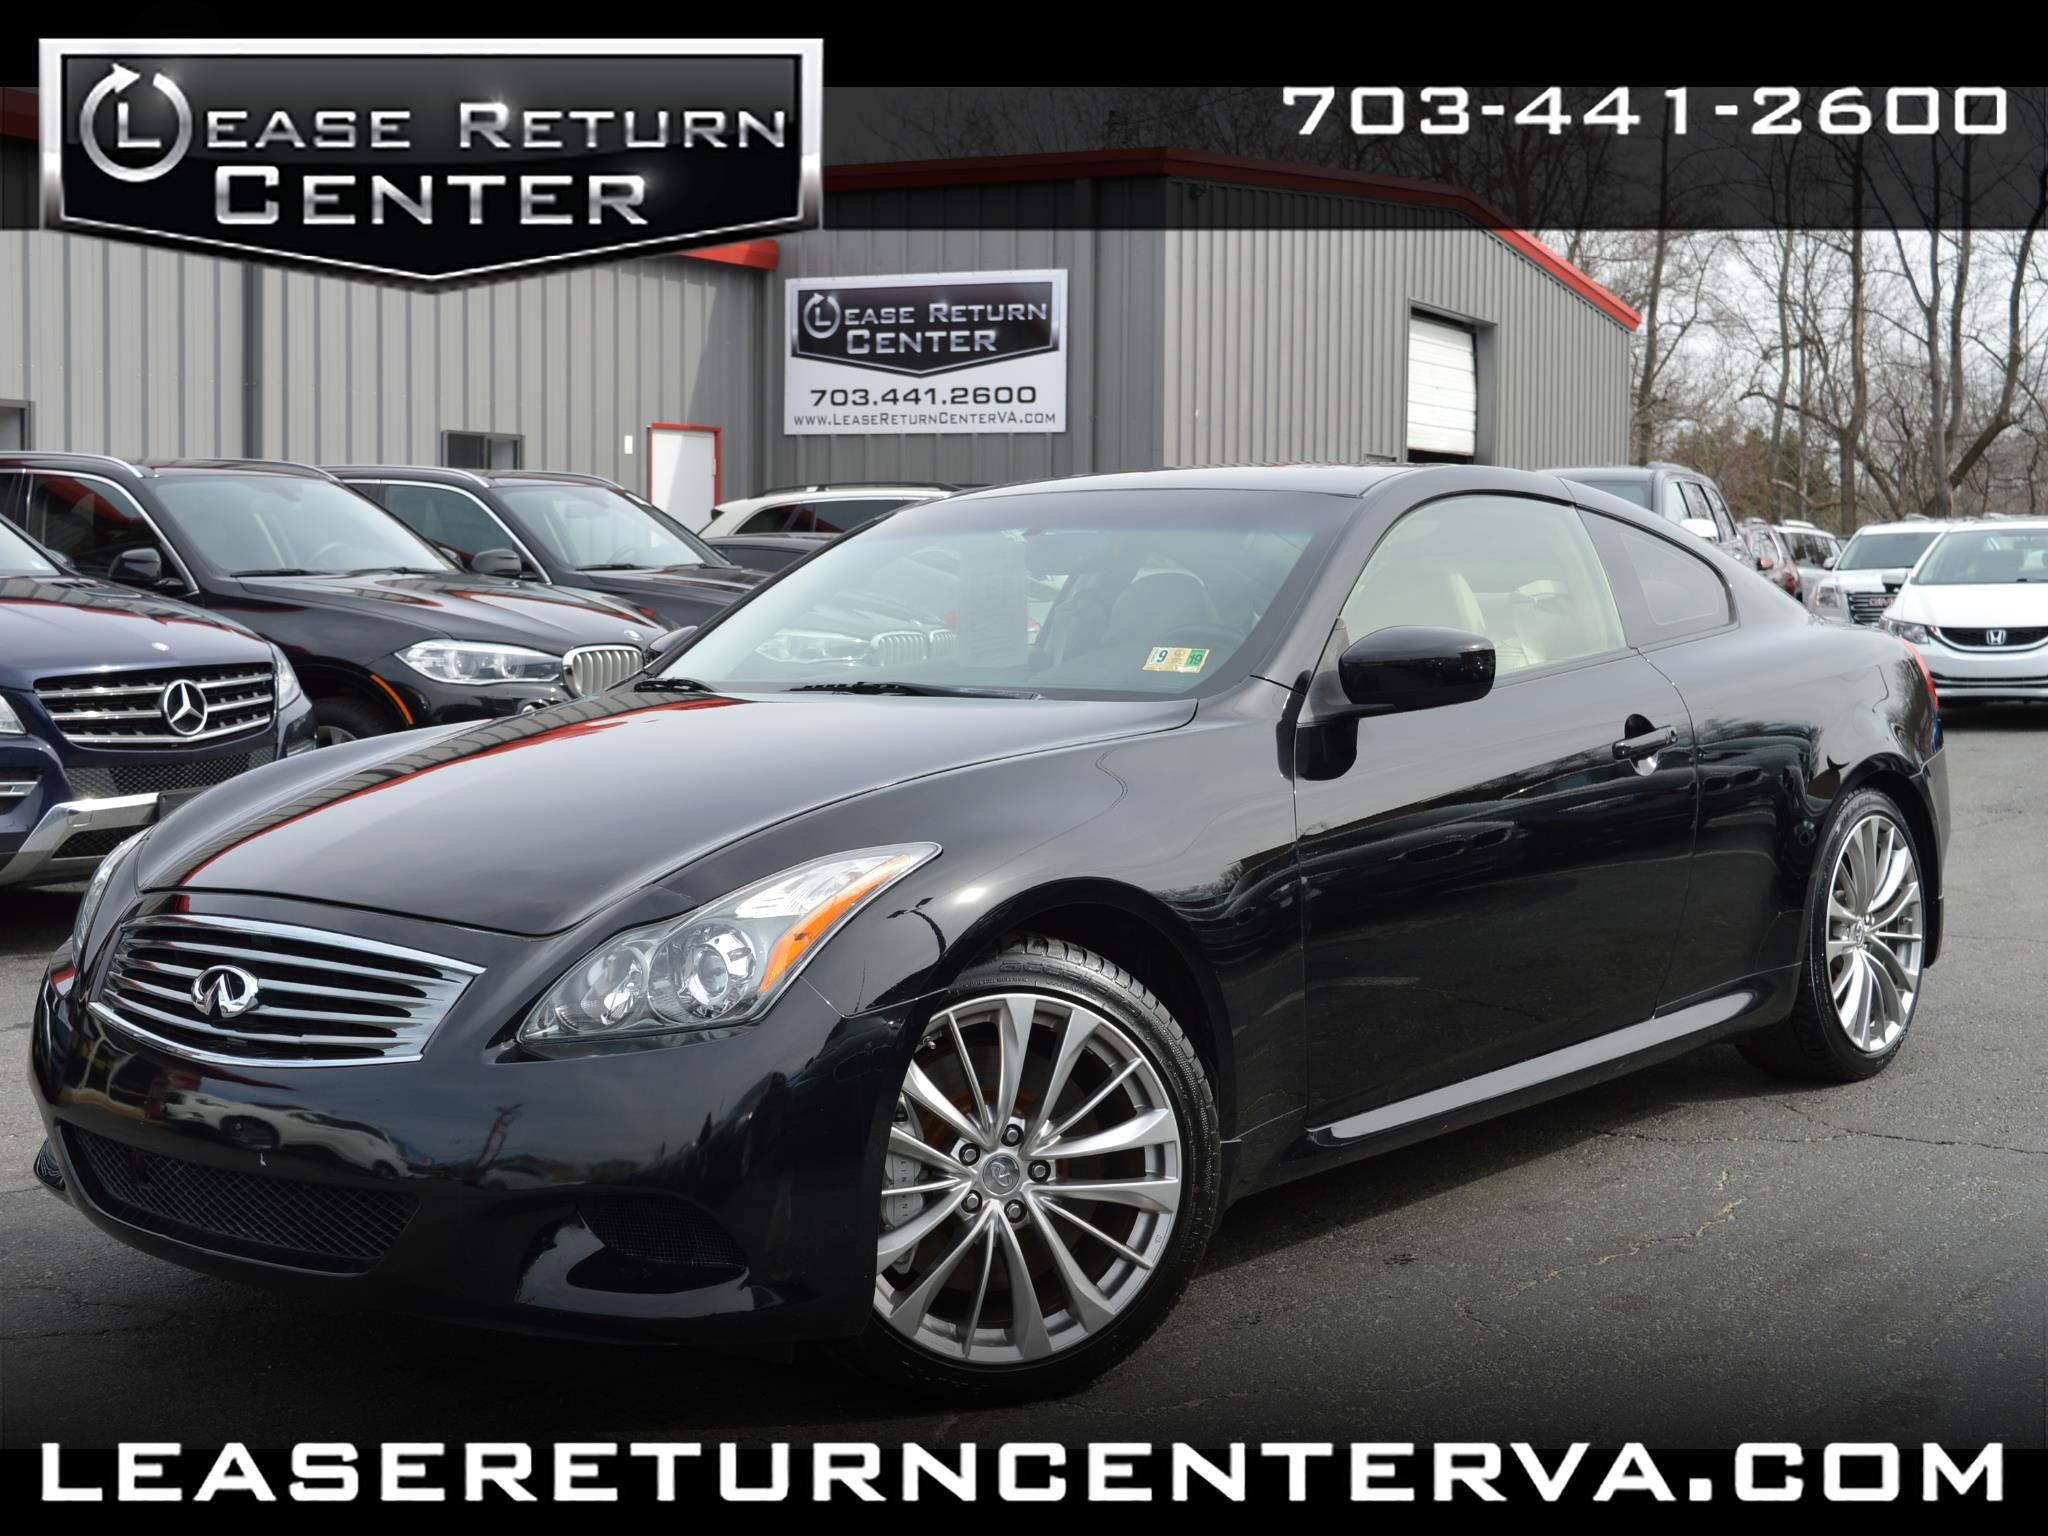 2013 Infiniti G37 Coupe 2dr Journey RWD